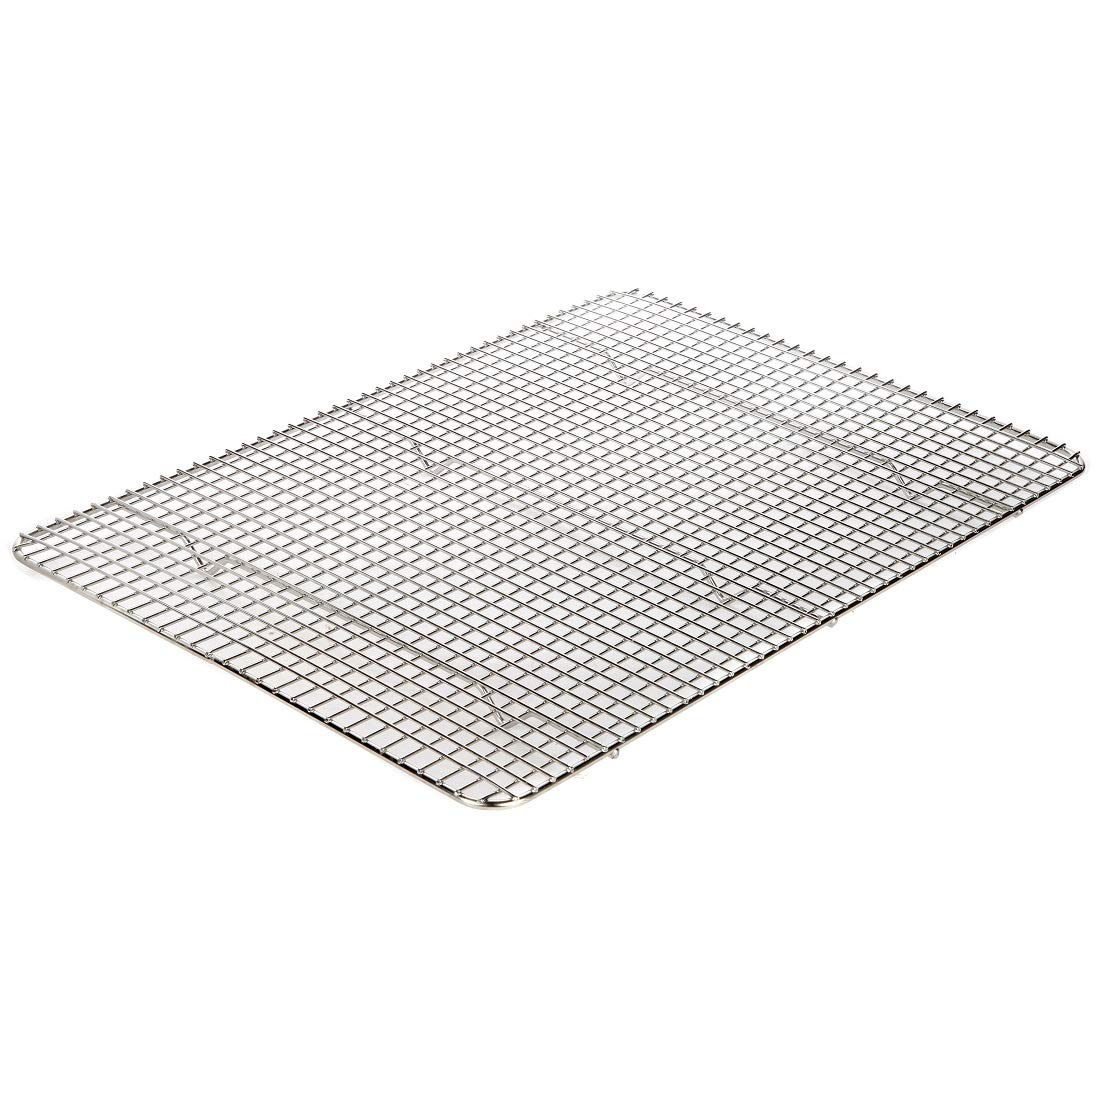 Lily S Home Cooling Rack Baking Rack Heavy Duty 100 Stainless Steel Oven Safe 15 X 10 Inch Kitchen Dining Dprd Tasikmalayakab Go Id